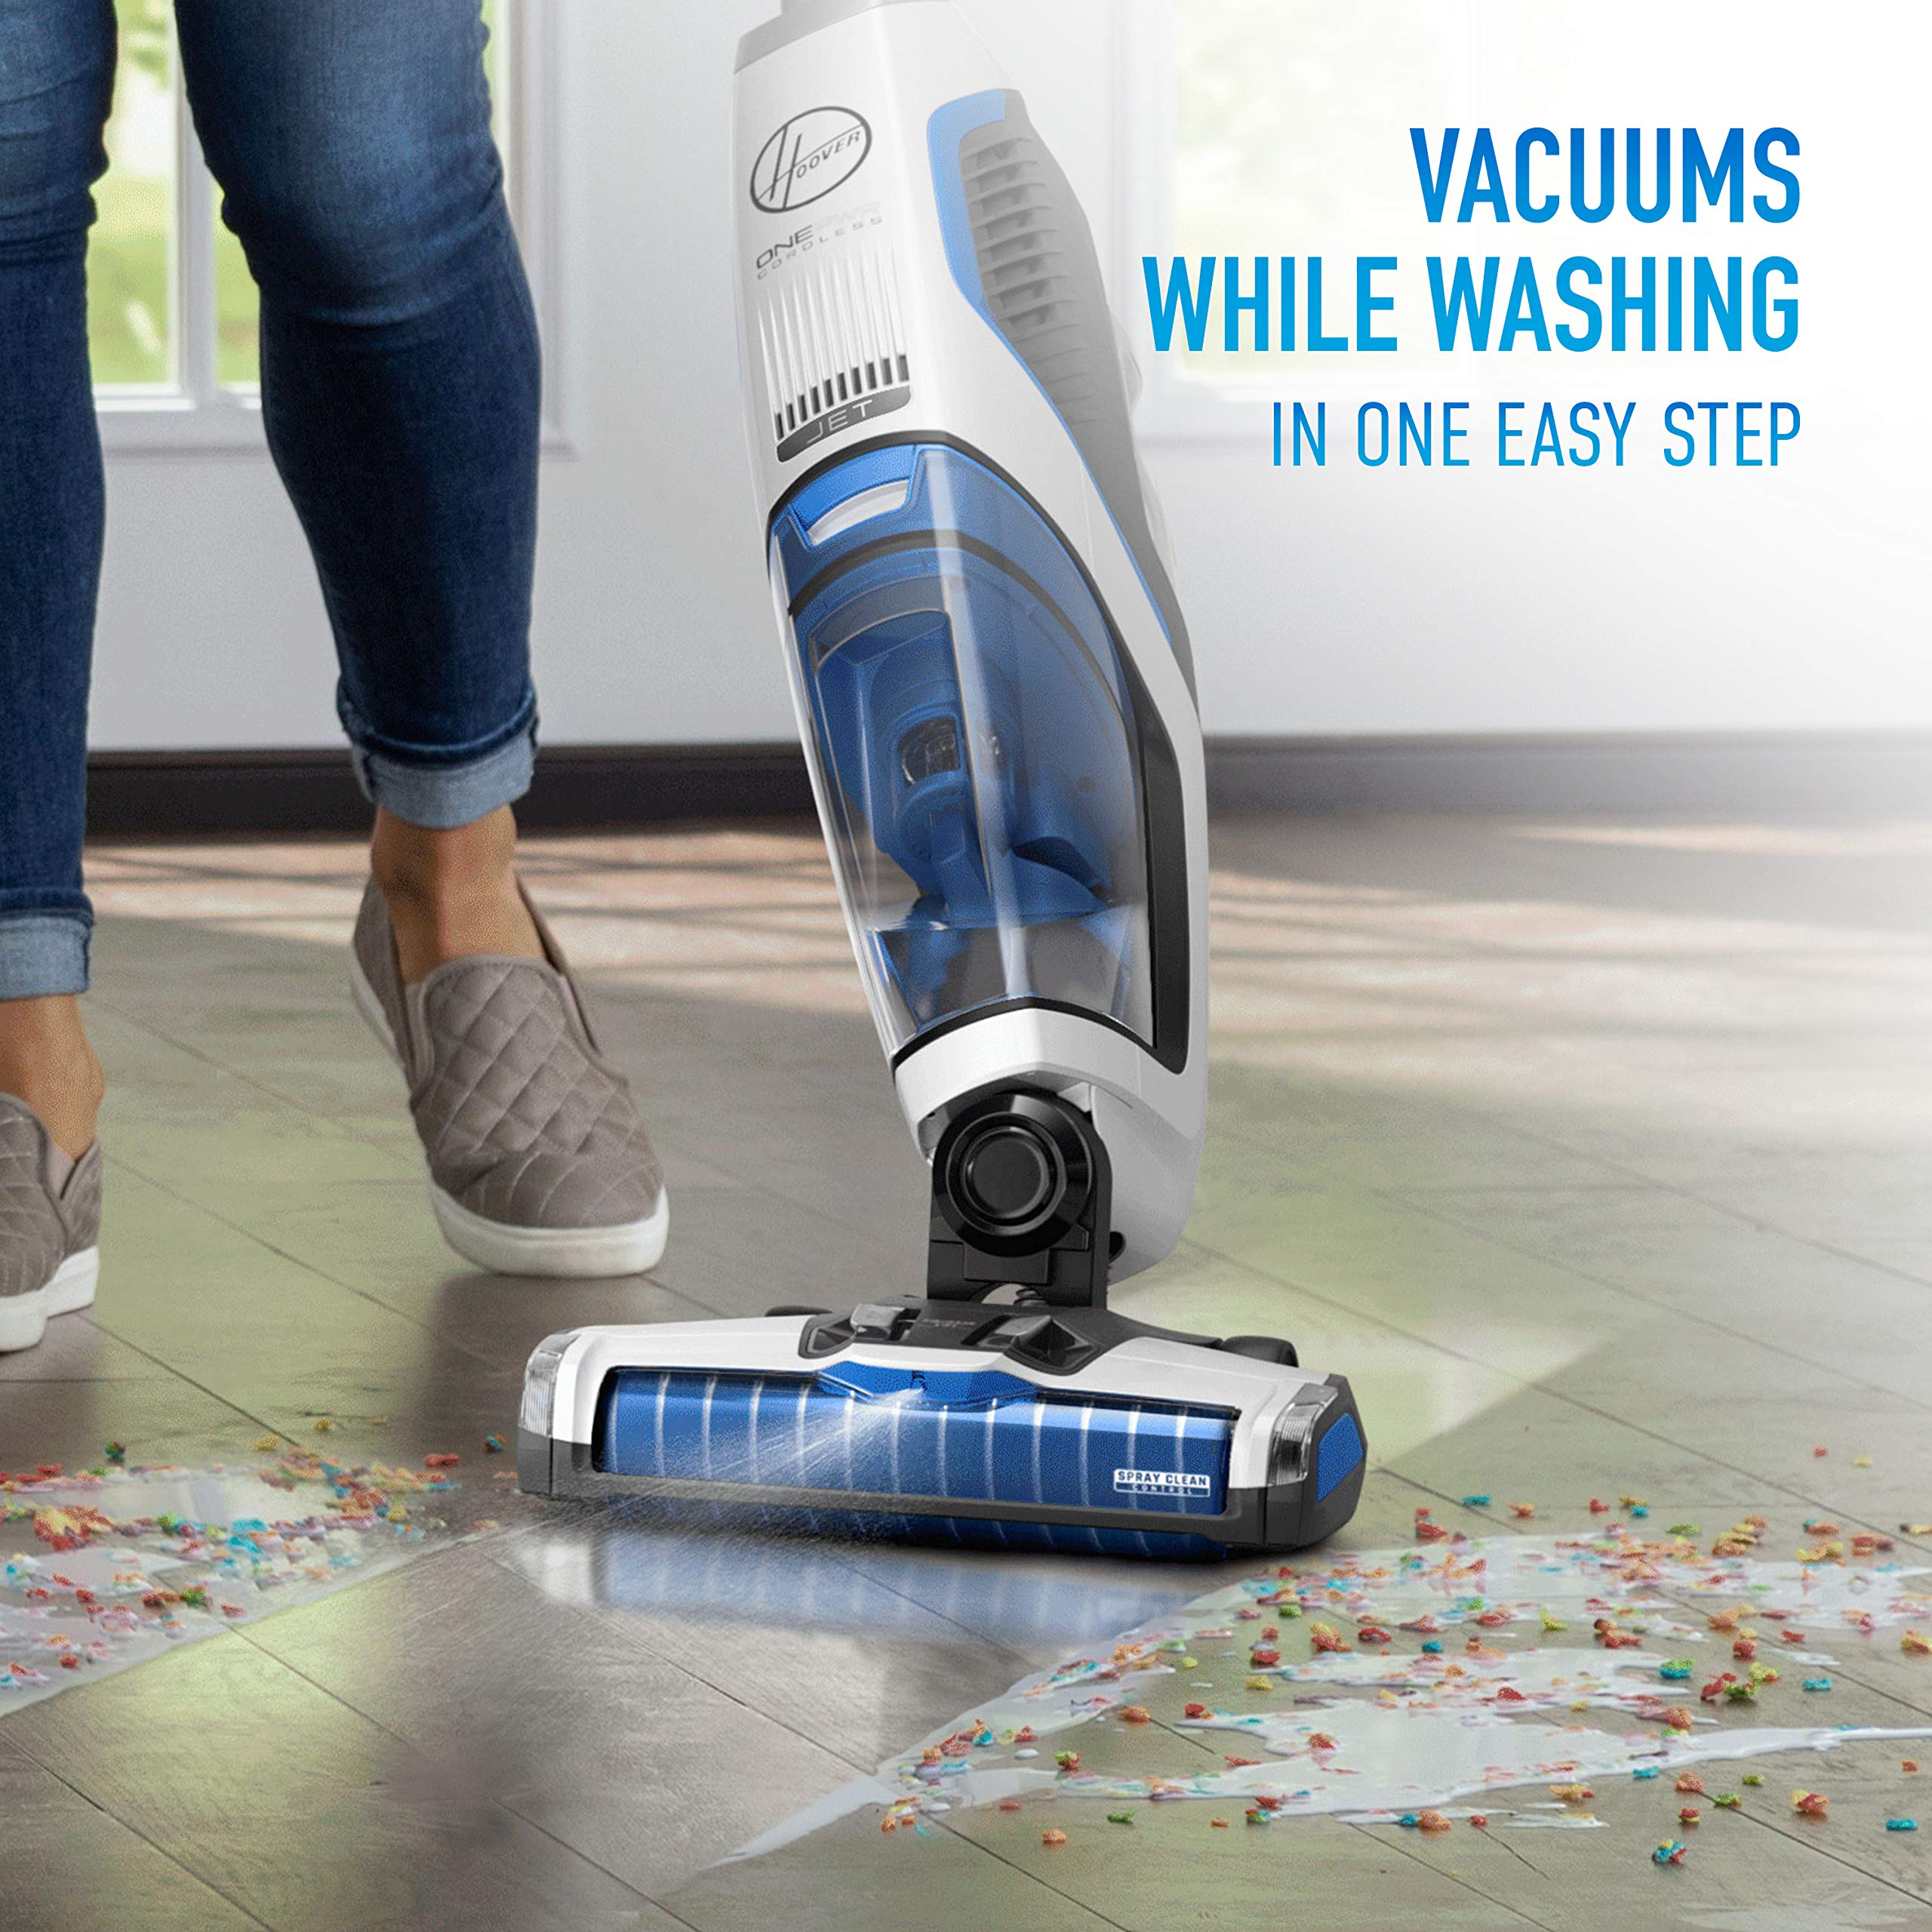 Hoover ONEPWR Cordless FloorMate Jet Hard Floor Cleaner, Wet Vacuum, BH55210, White by Hoover (Image #1)